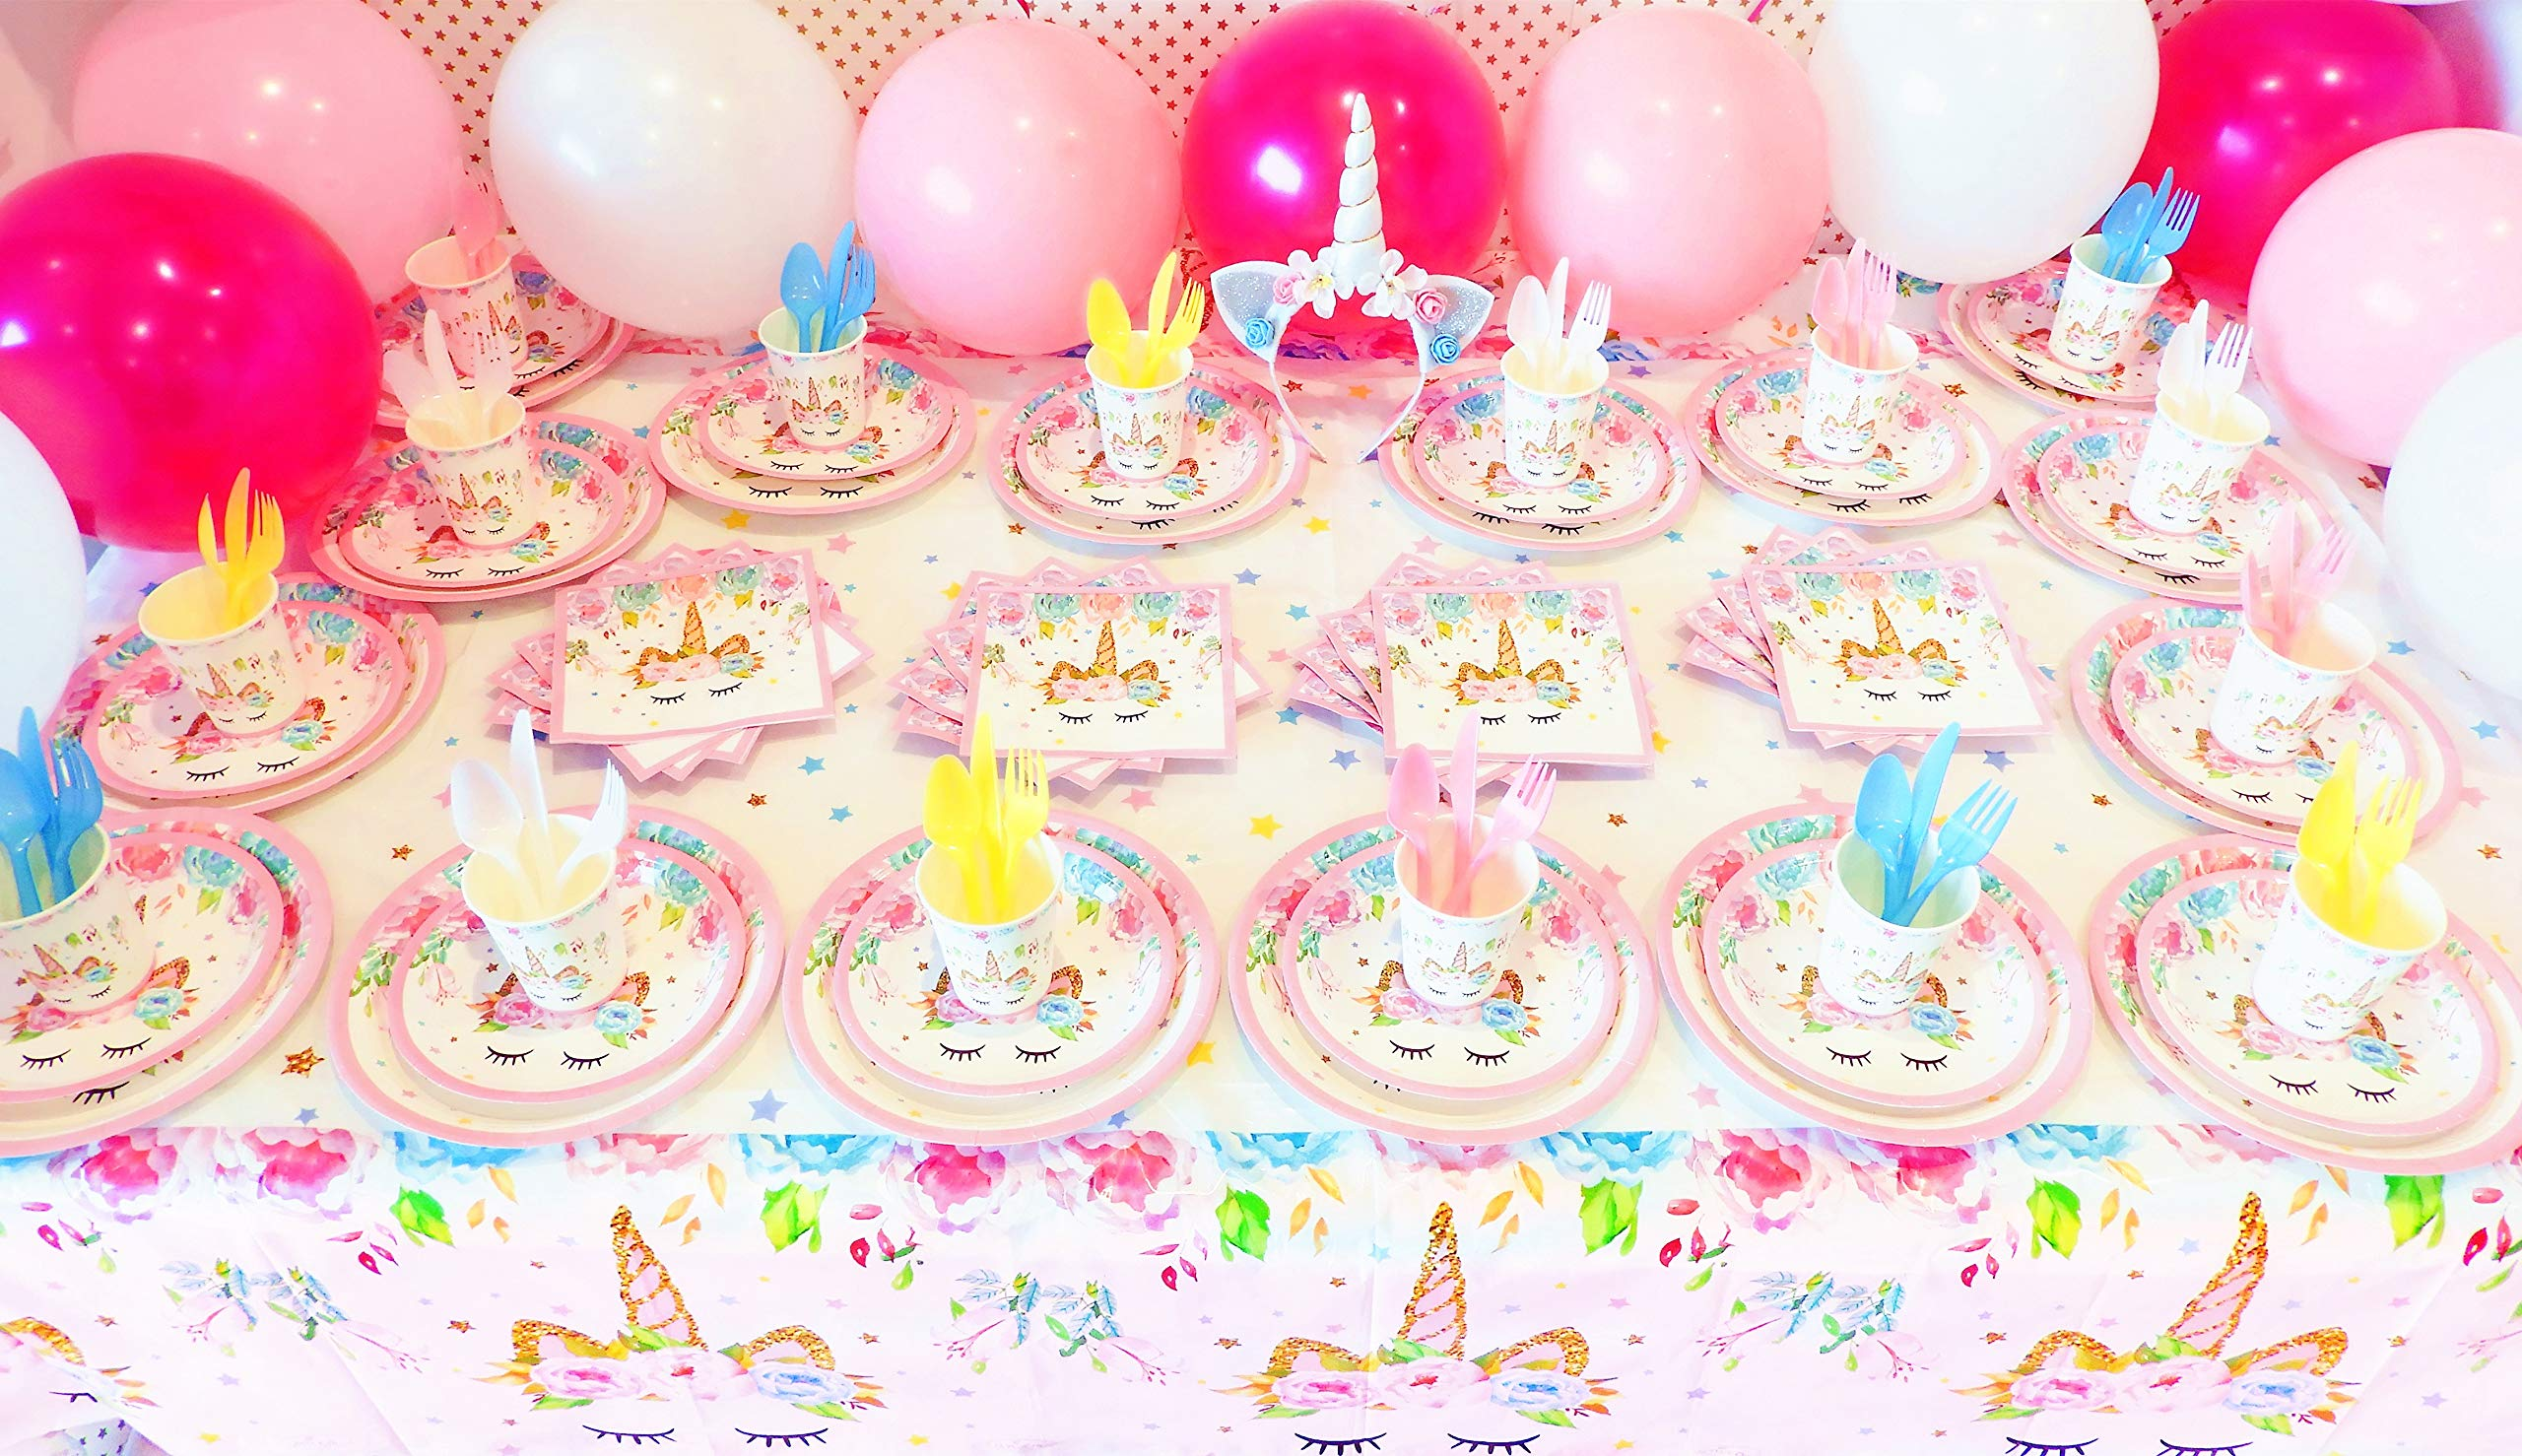 Unicorn Party Supplies Set with BONUS Glittery Unicorn Headband and 30 Balloons | 145 Piece Disposable Unicorn Themed… 9